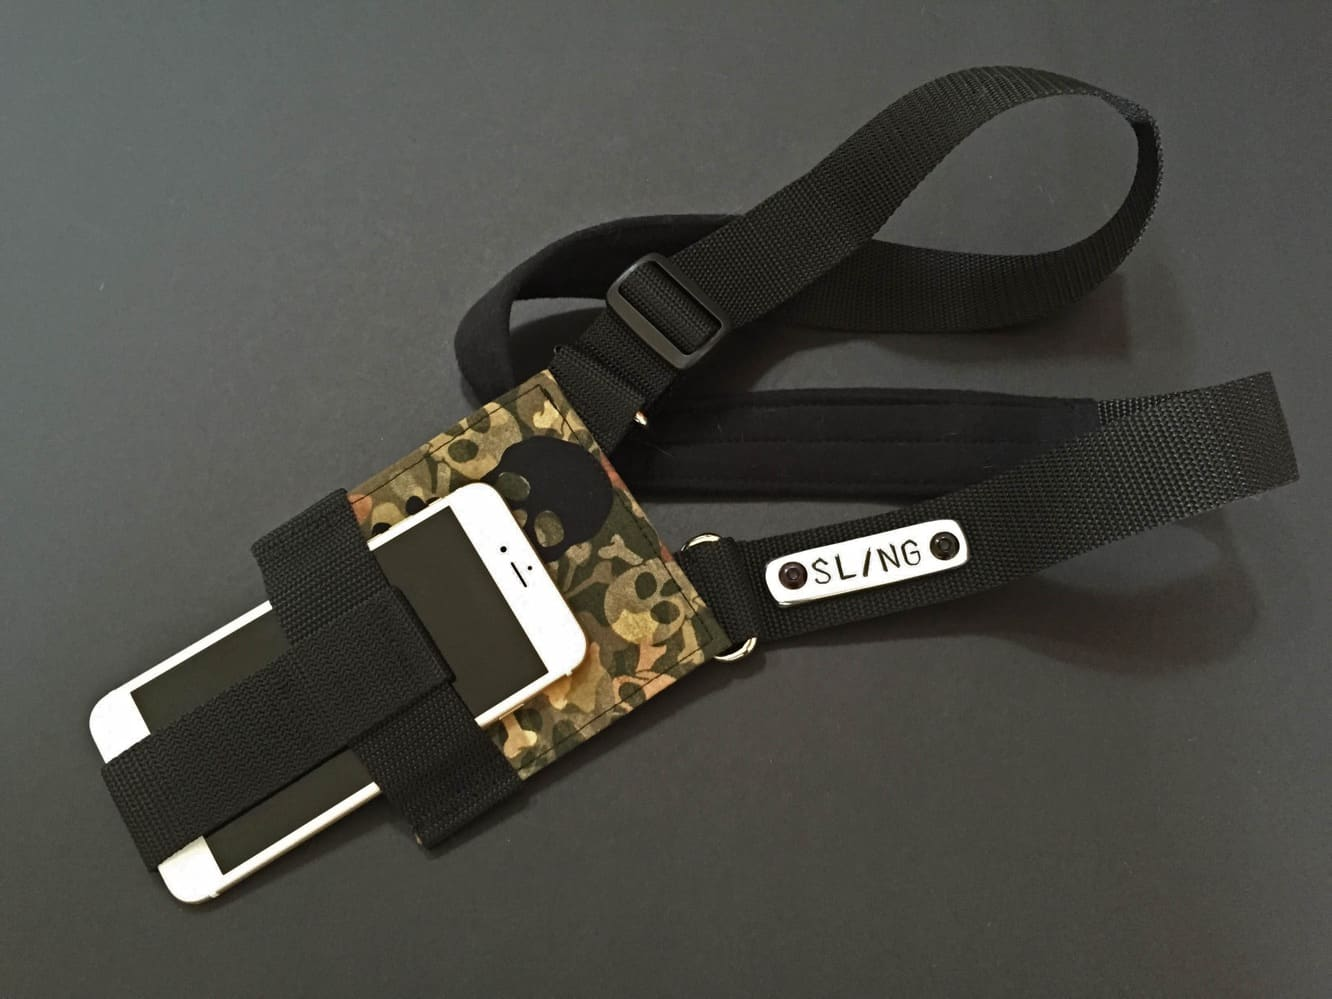 Man Sling for iPhone 6 and iPhone 6 Plus